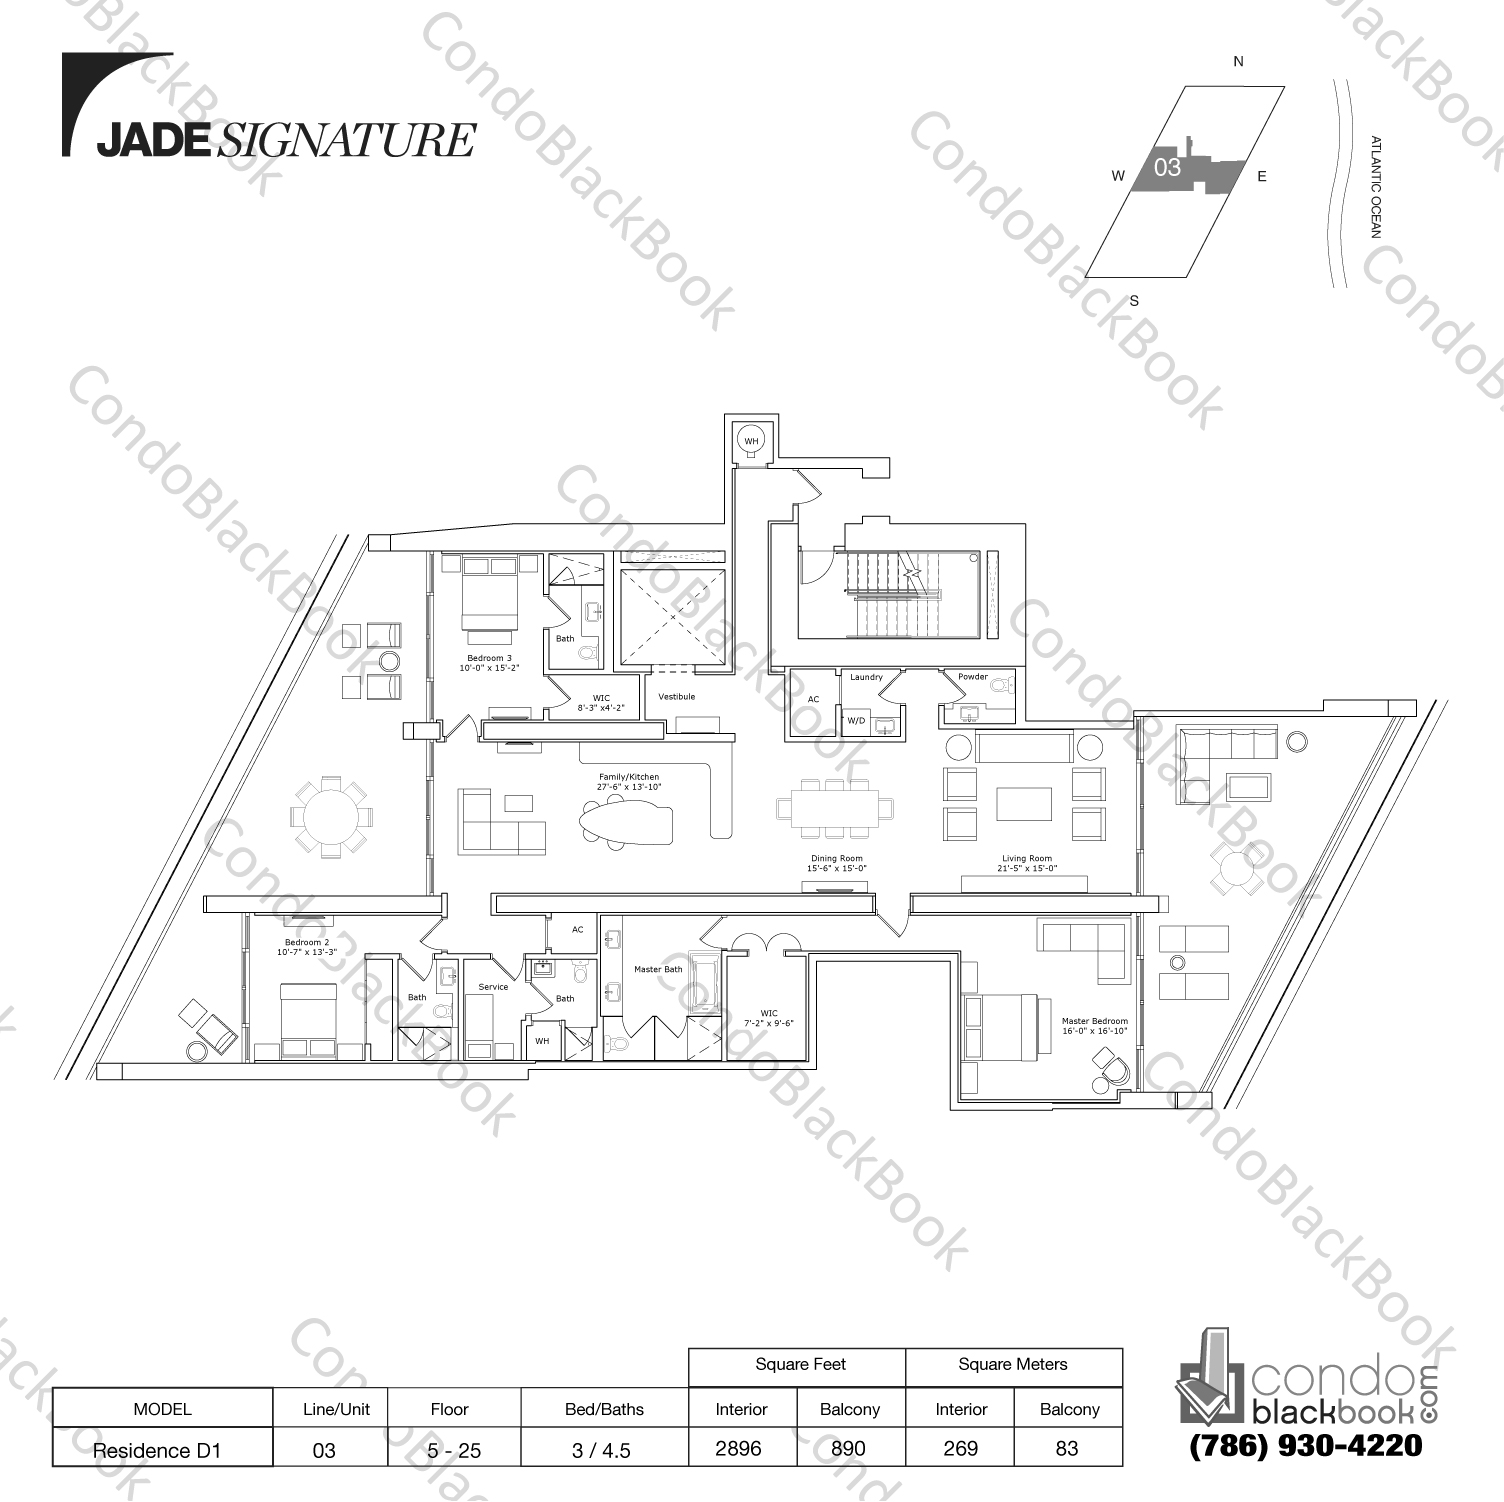 Floor plan for Jade Signature Sunny Isles Beach, model Residence D1, line 03, 3/4.5 bedrooms, 2896 sq ft